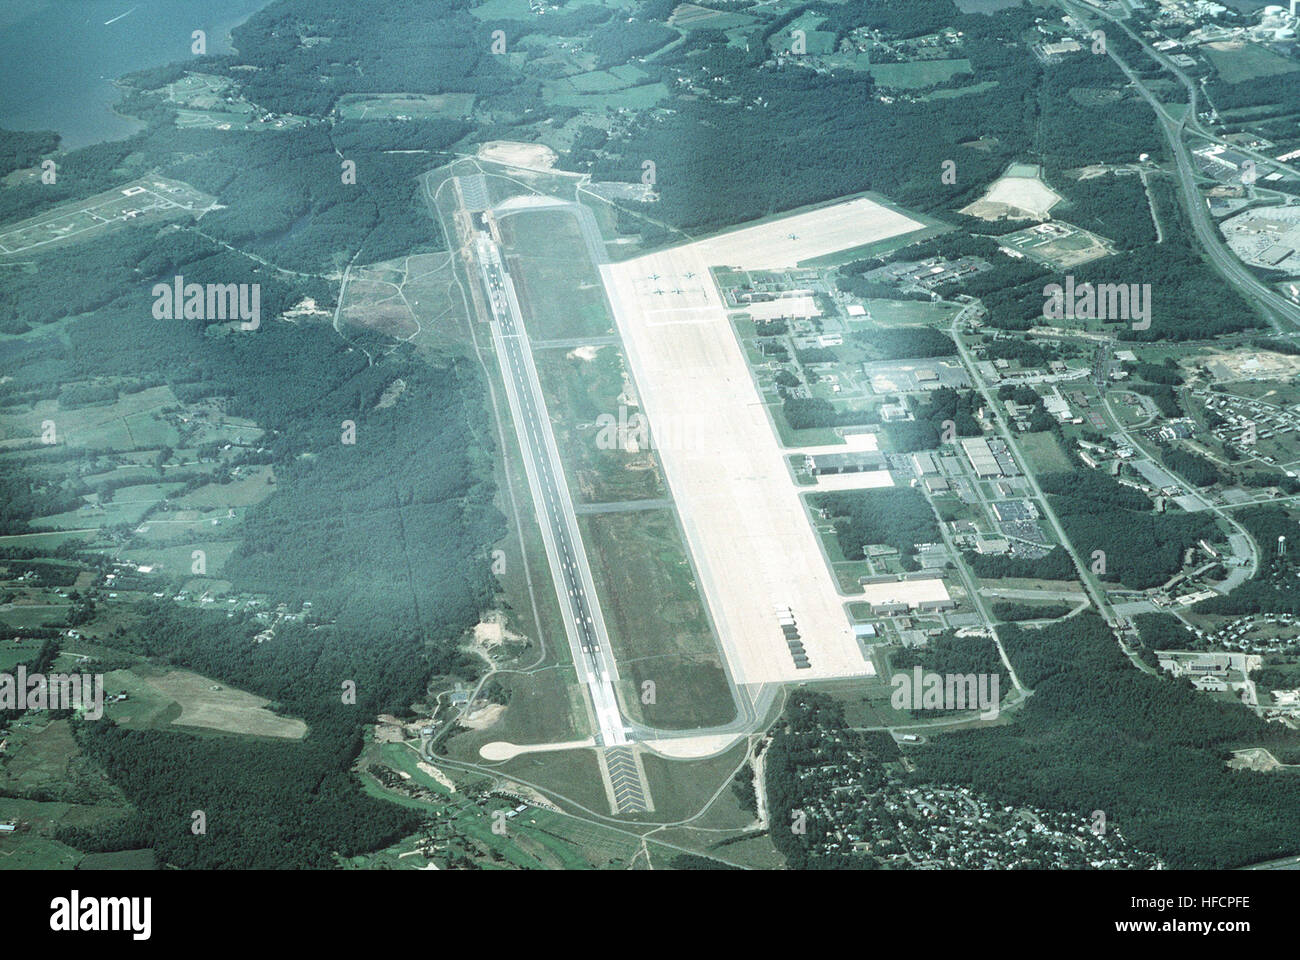 High Oblique Aerial View Looking North Of Pease Air National Guard Base This Joint Use Civil And Military Airfield Is Home To The 157th Refueling